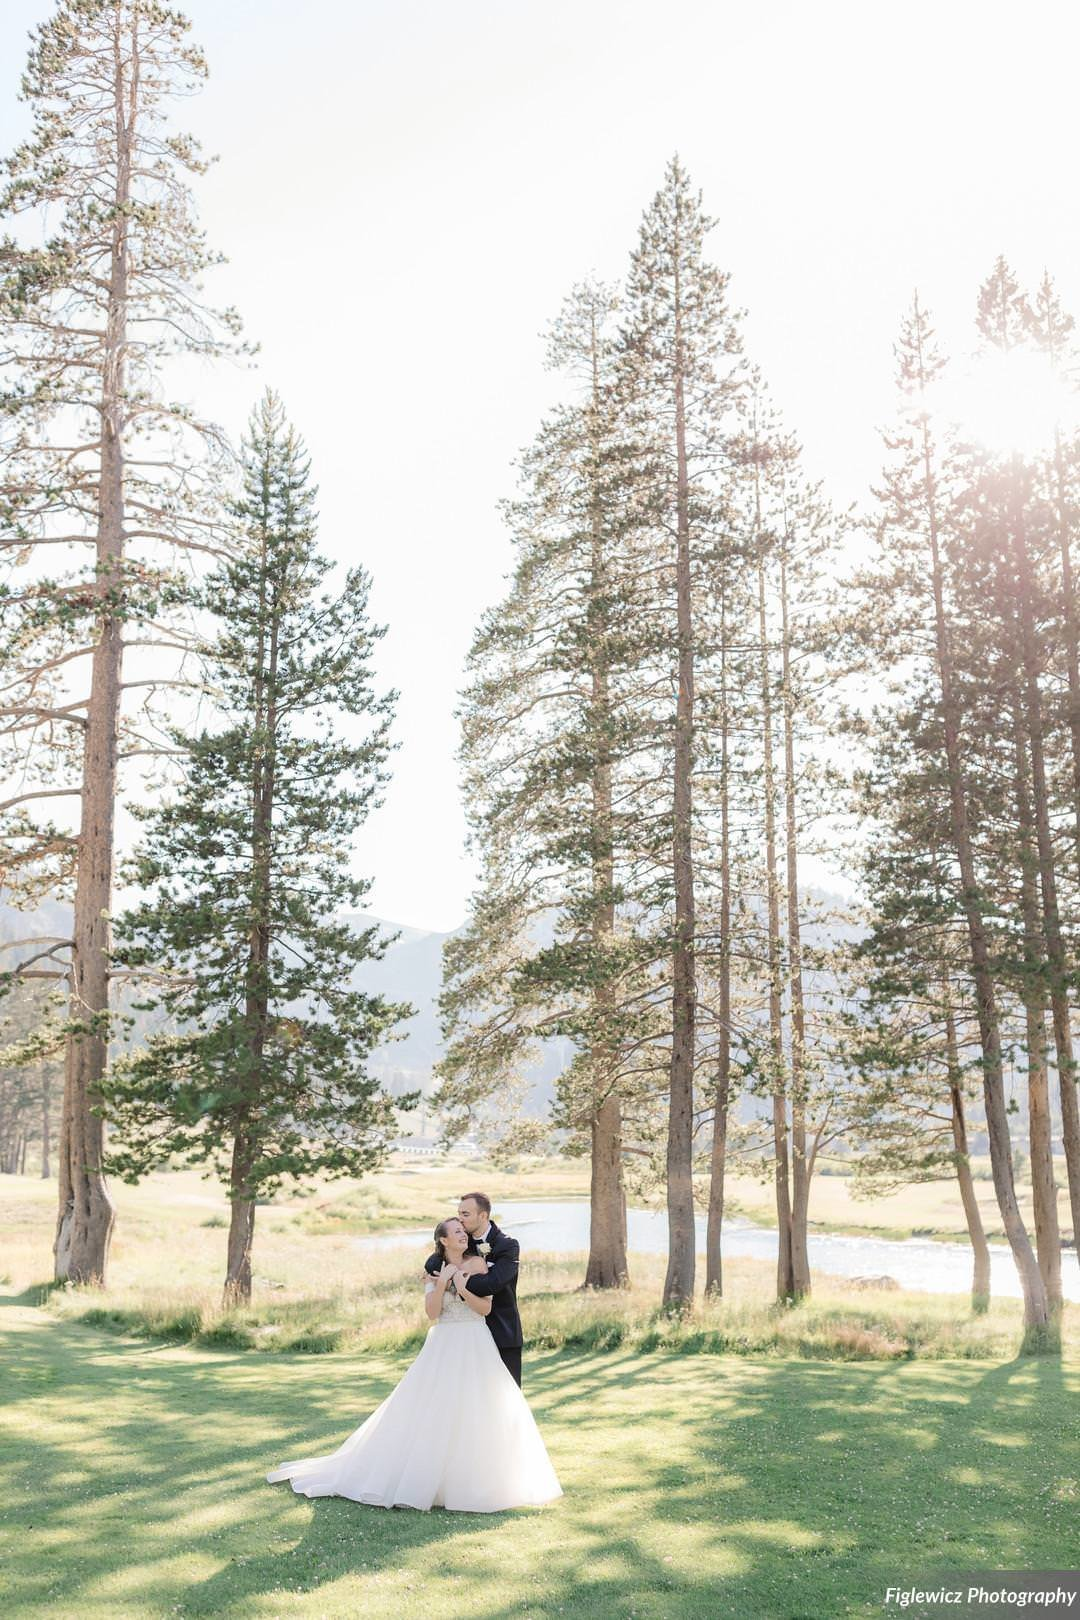 Garden_Tinsley_FiglewiczPhotography_LakeTahoeWeddingSquawValleyCreekTaylorBrendan00114_big